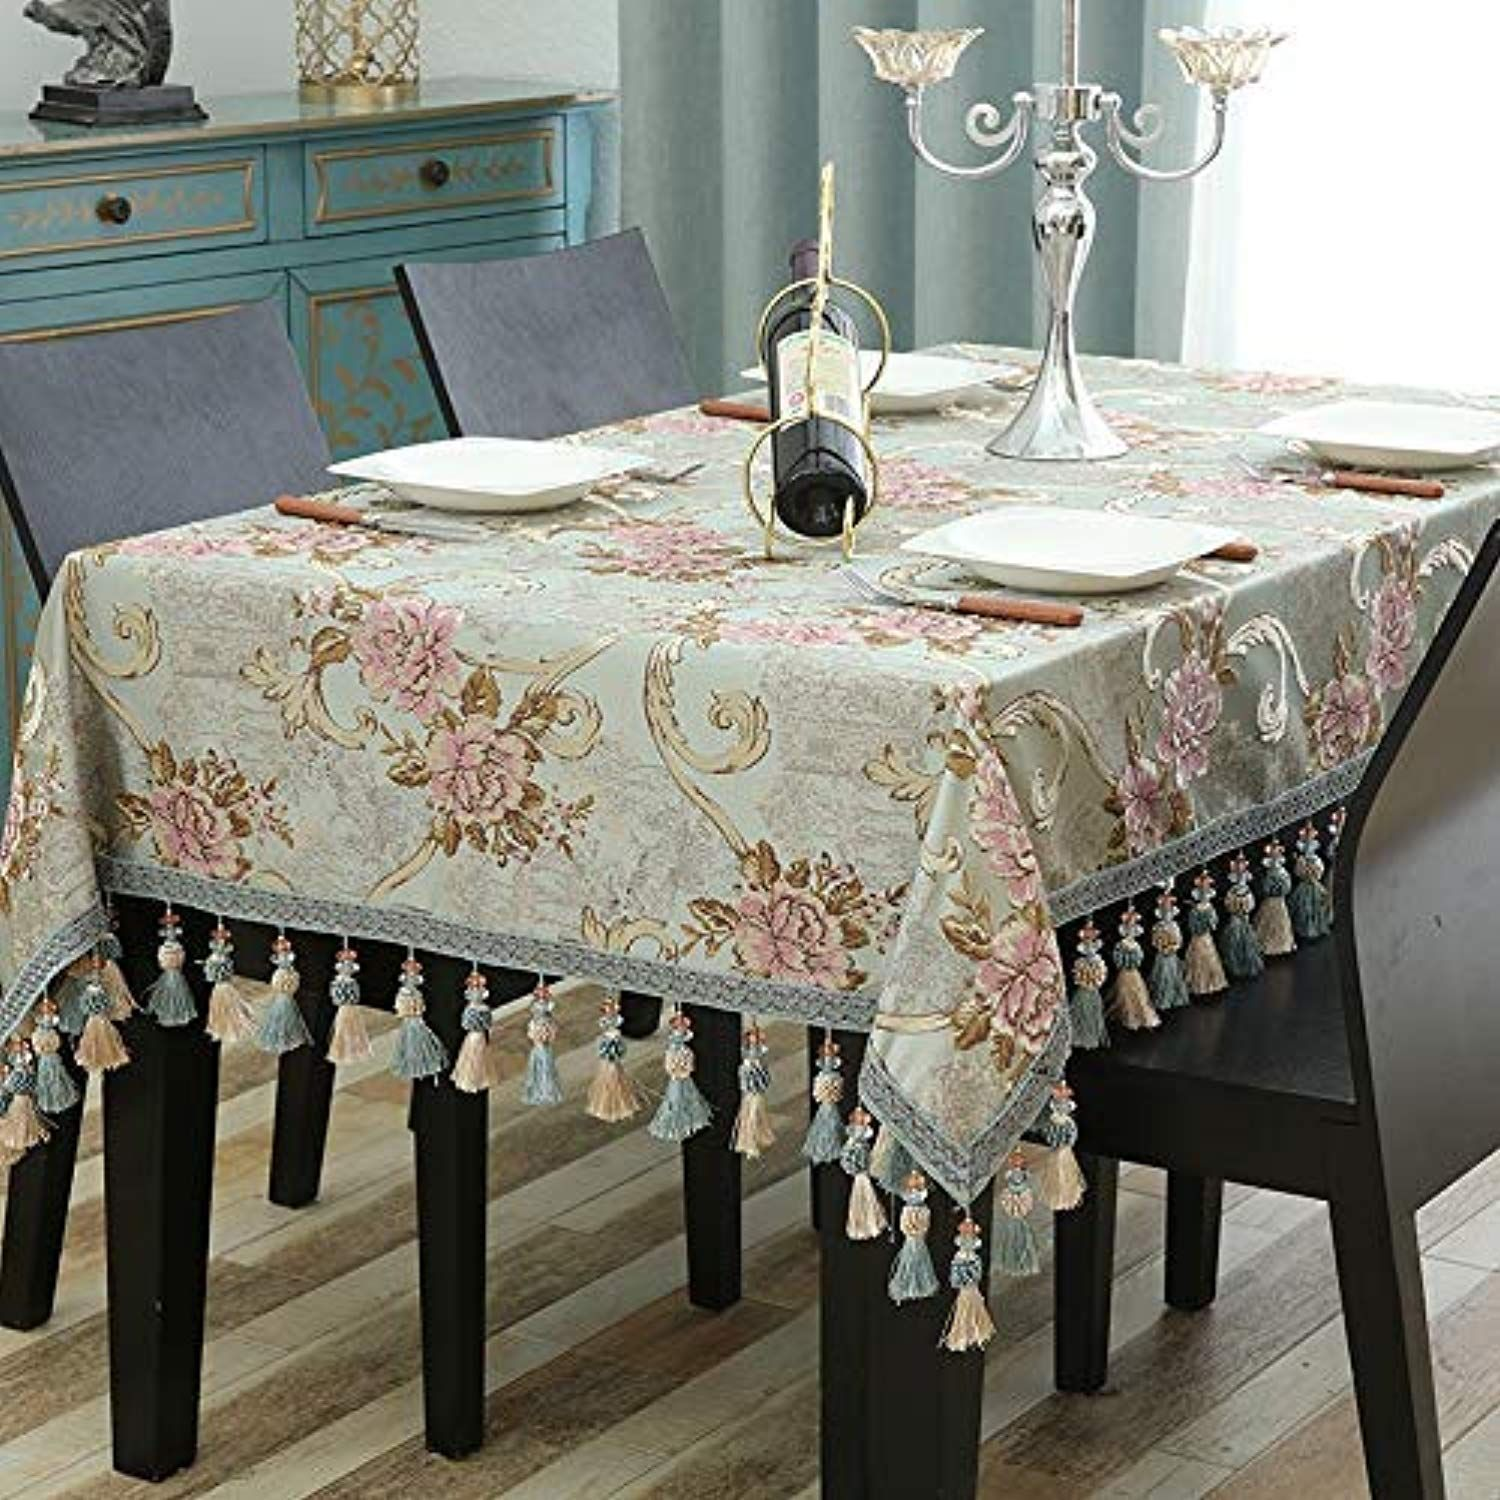 Decorative Waterproof Tablecloths Home Decor Home European Tablecloth Fabric Rectangular Home Living Room Western Coffee Table Kitchen Home Decor Table Covers